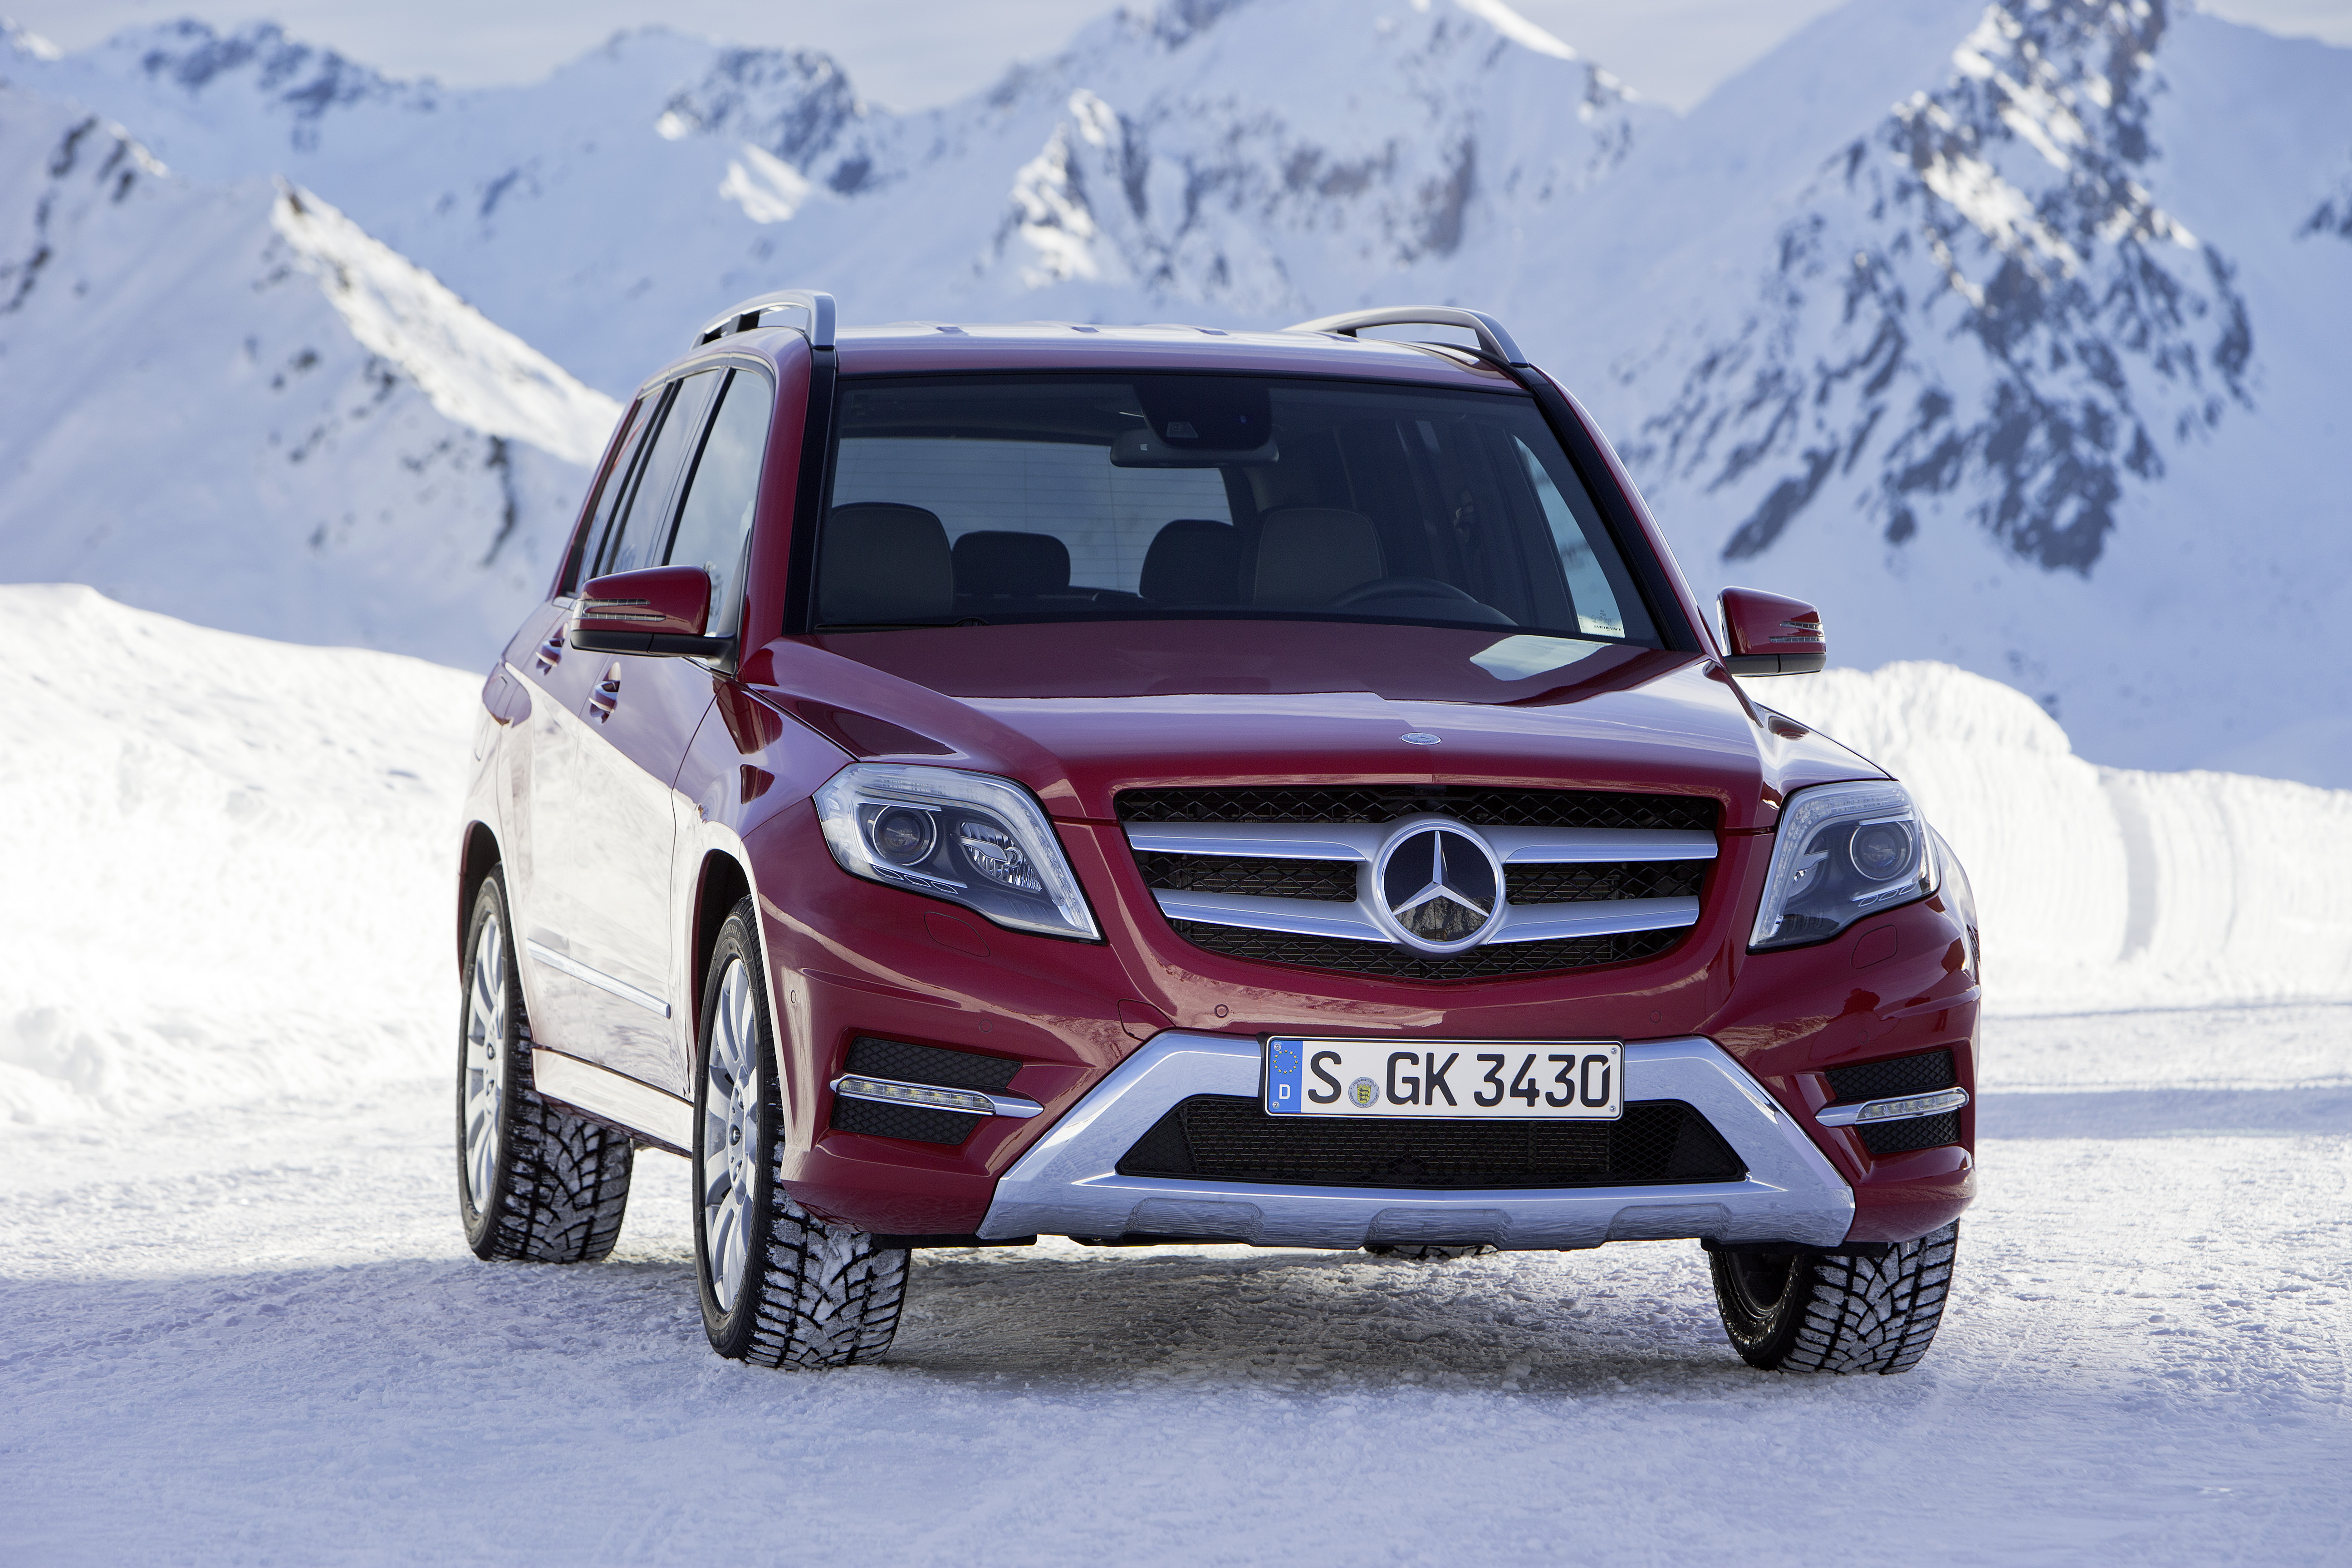 mercedes-benz wallpaper (Mercedes-Benz GLK-Class)